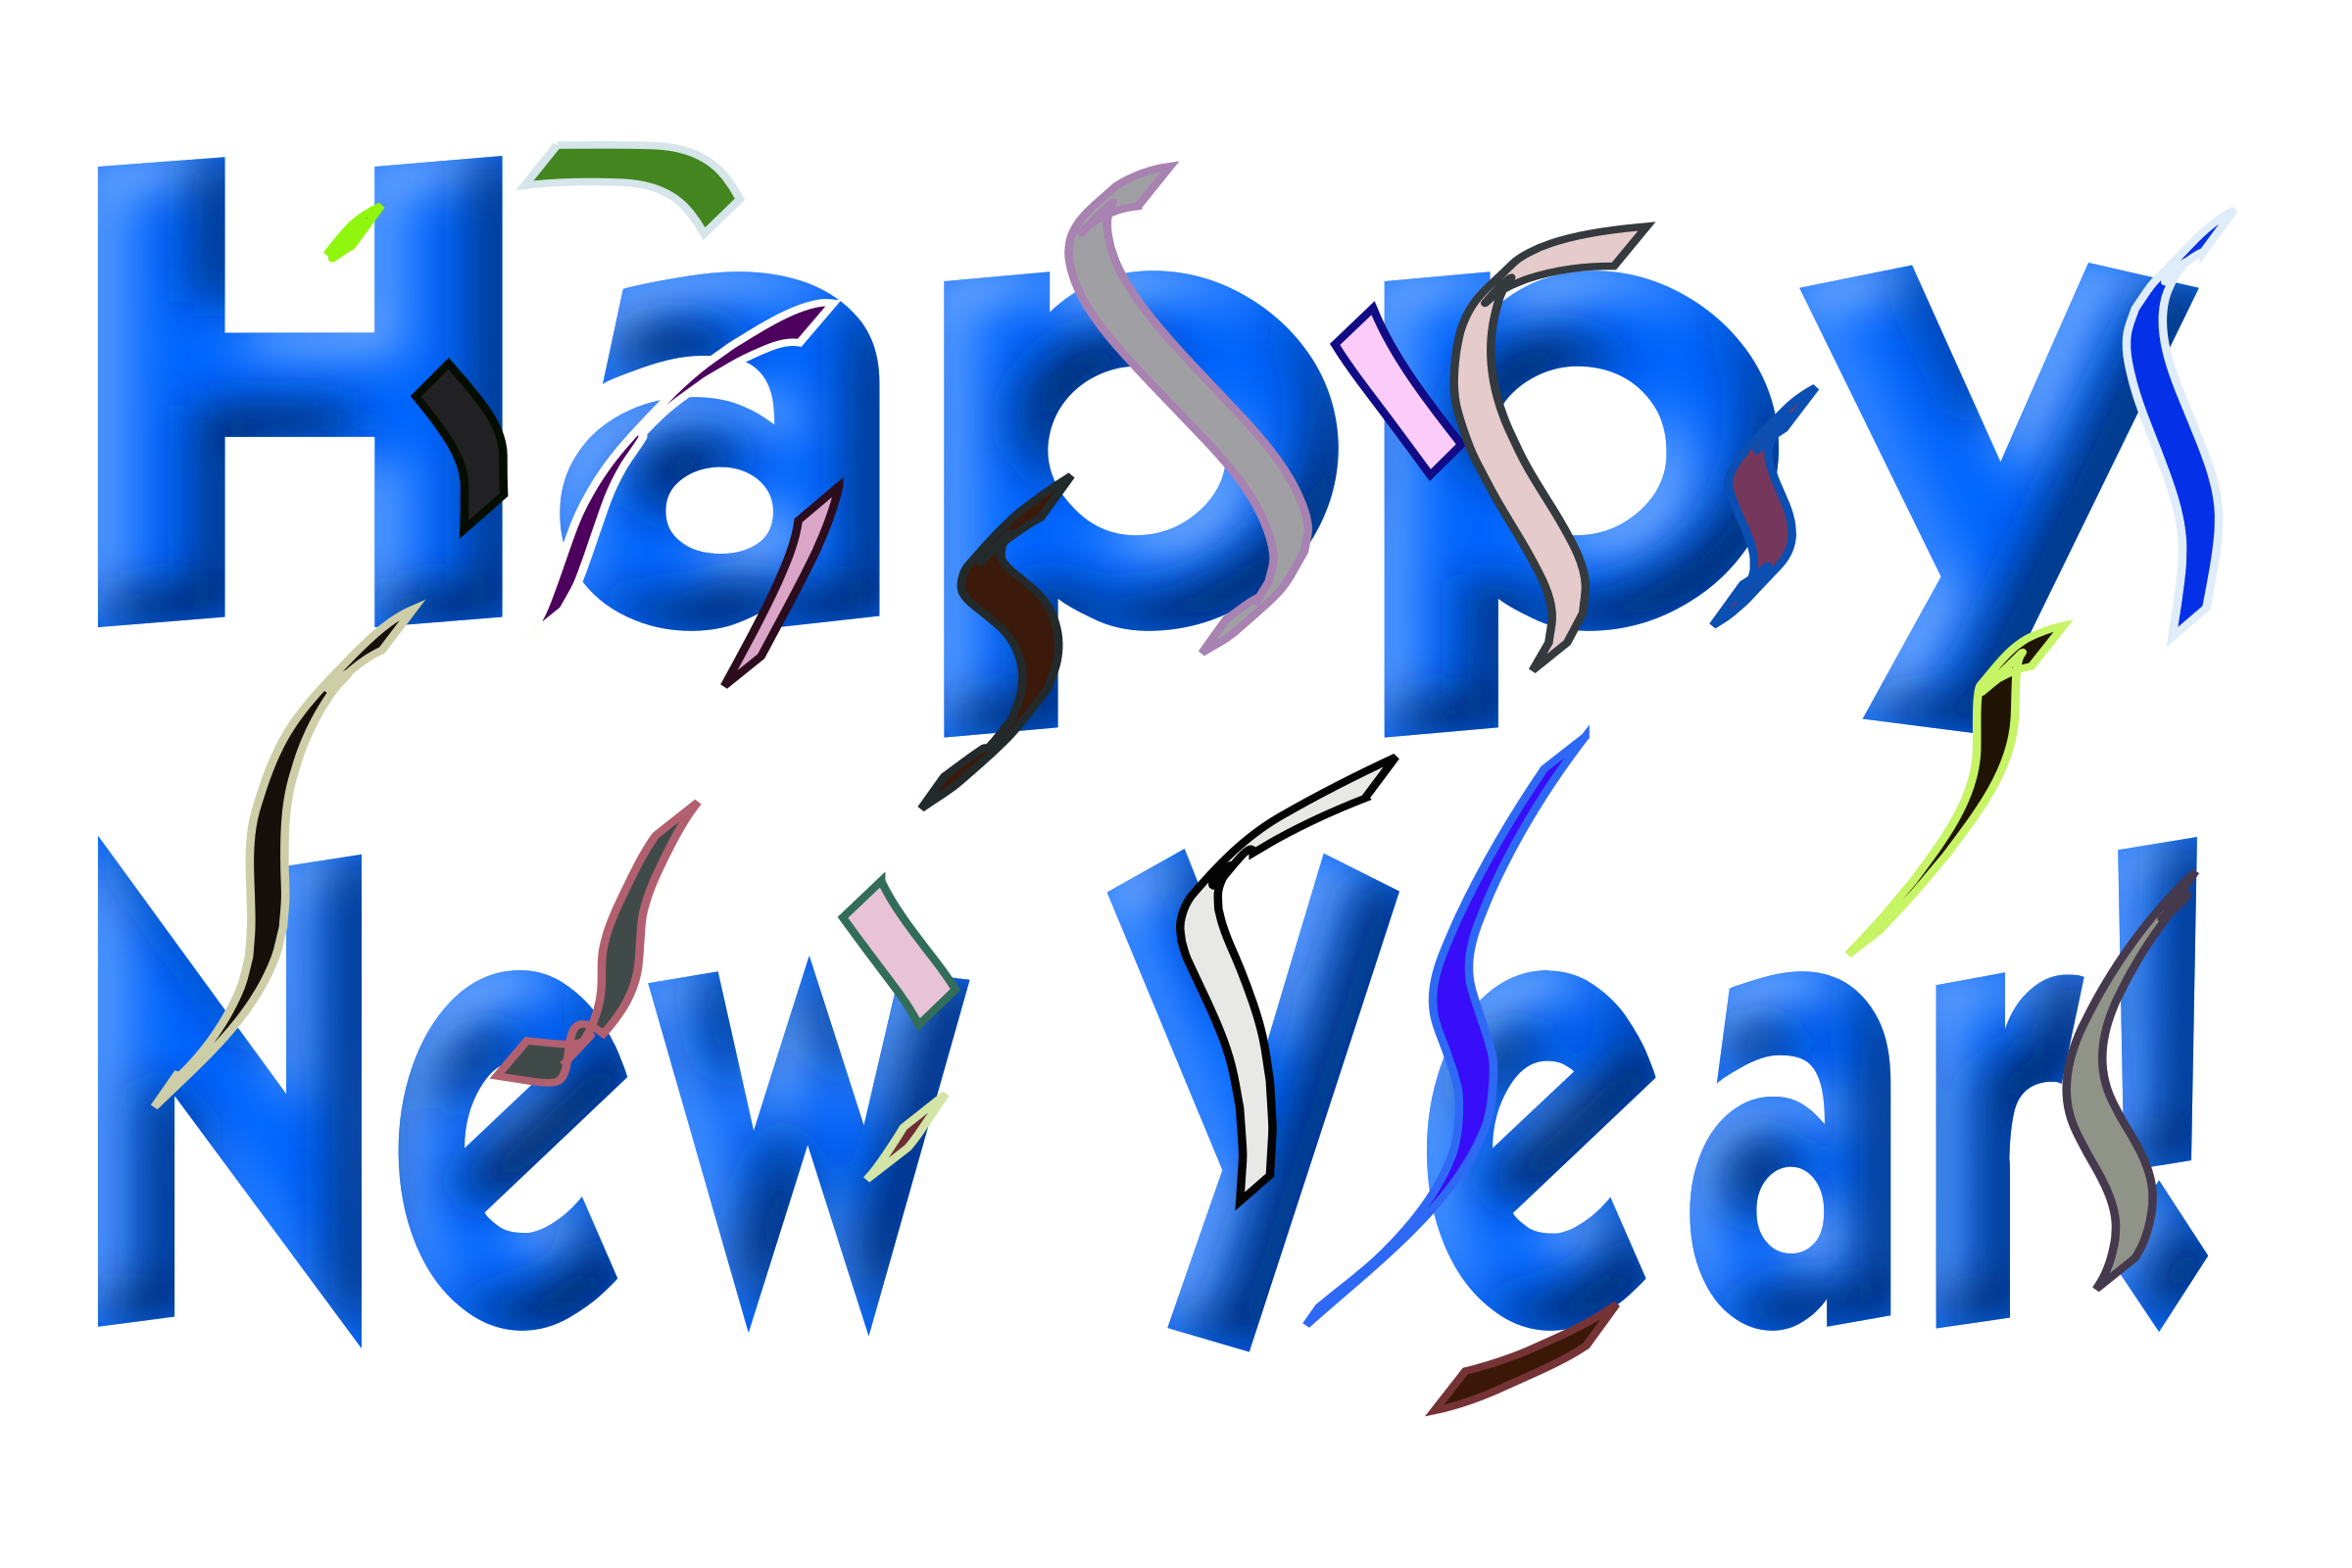 https://openclipart.org/image/2400px/svg_to_png/99007/Happy-New-Year-2011.png